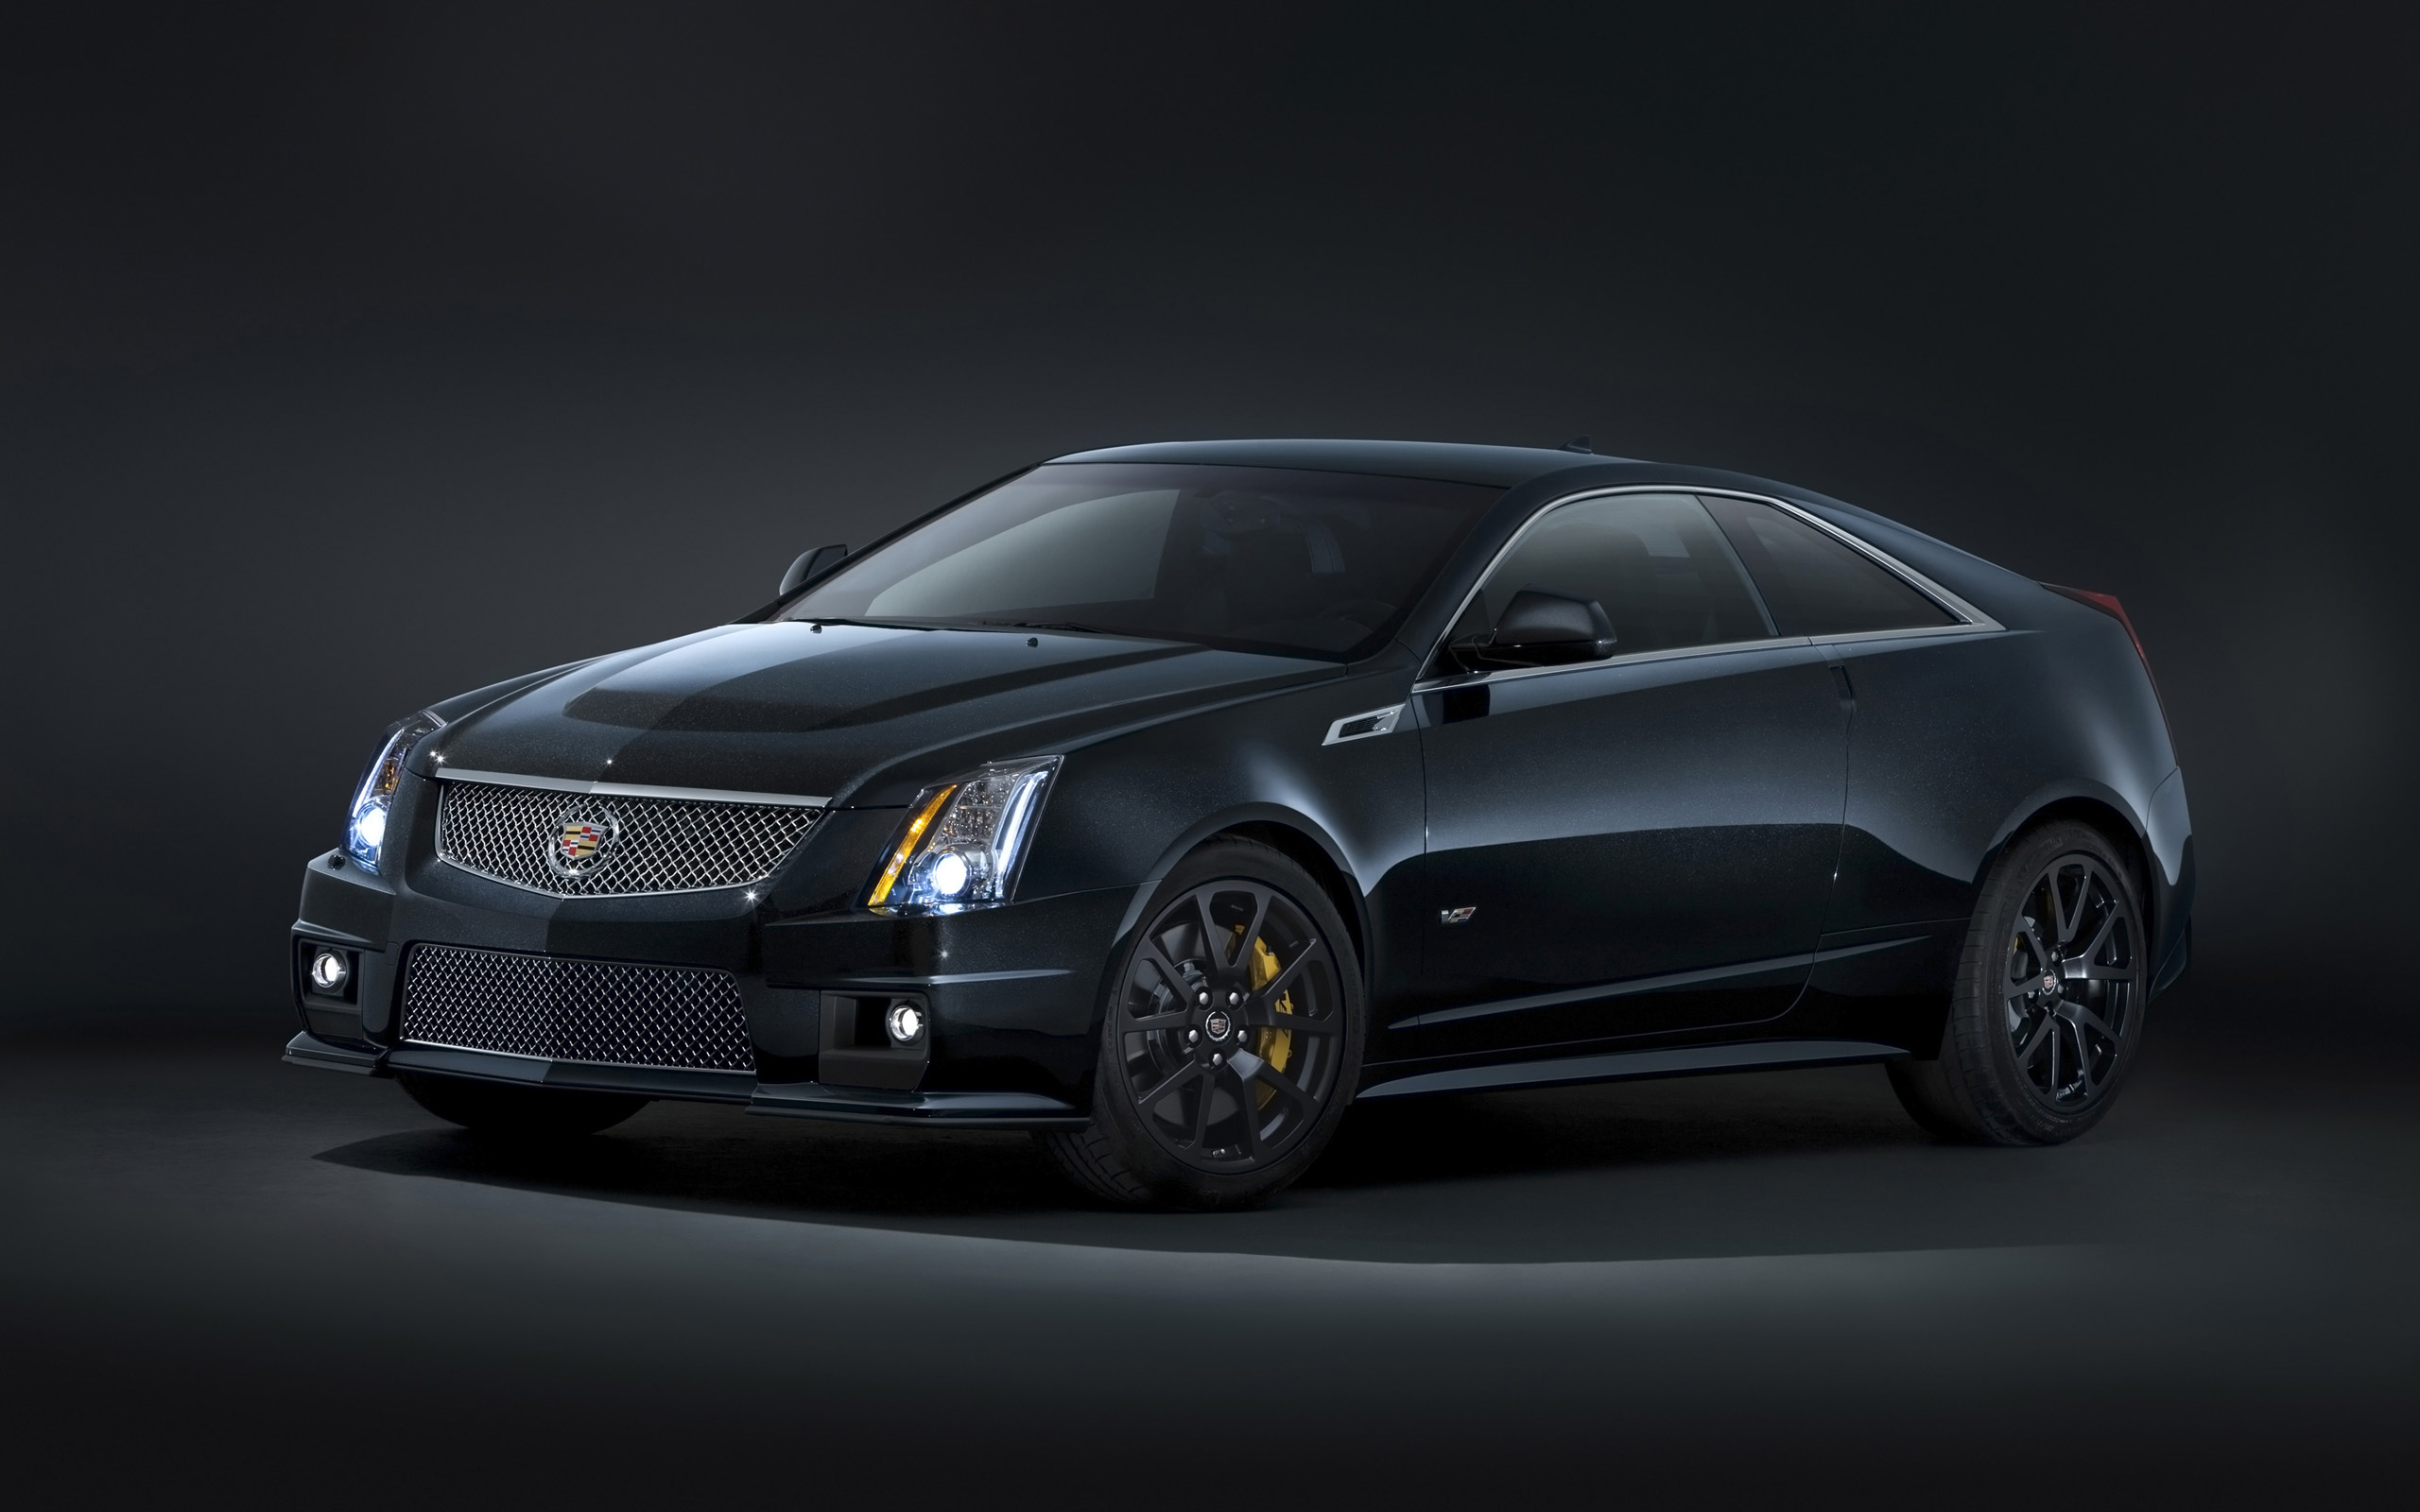 2014 Cadillac CTS V Coupe Wallpaper | HD Car Wallpapers | ID #3750